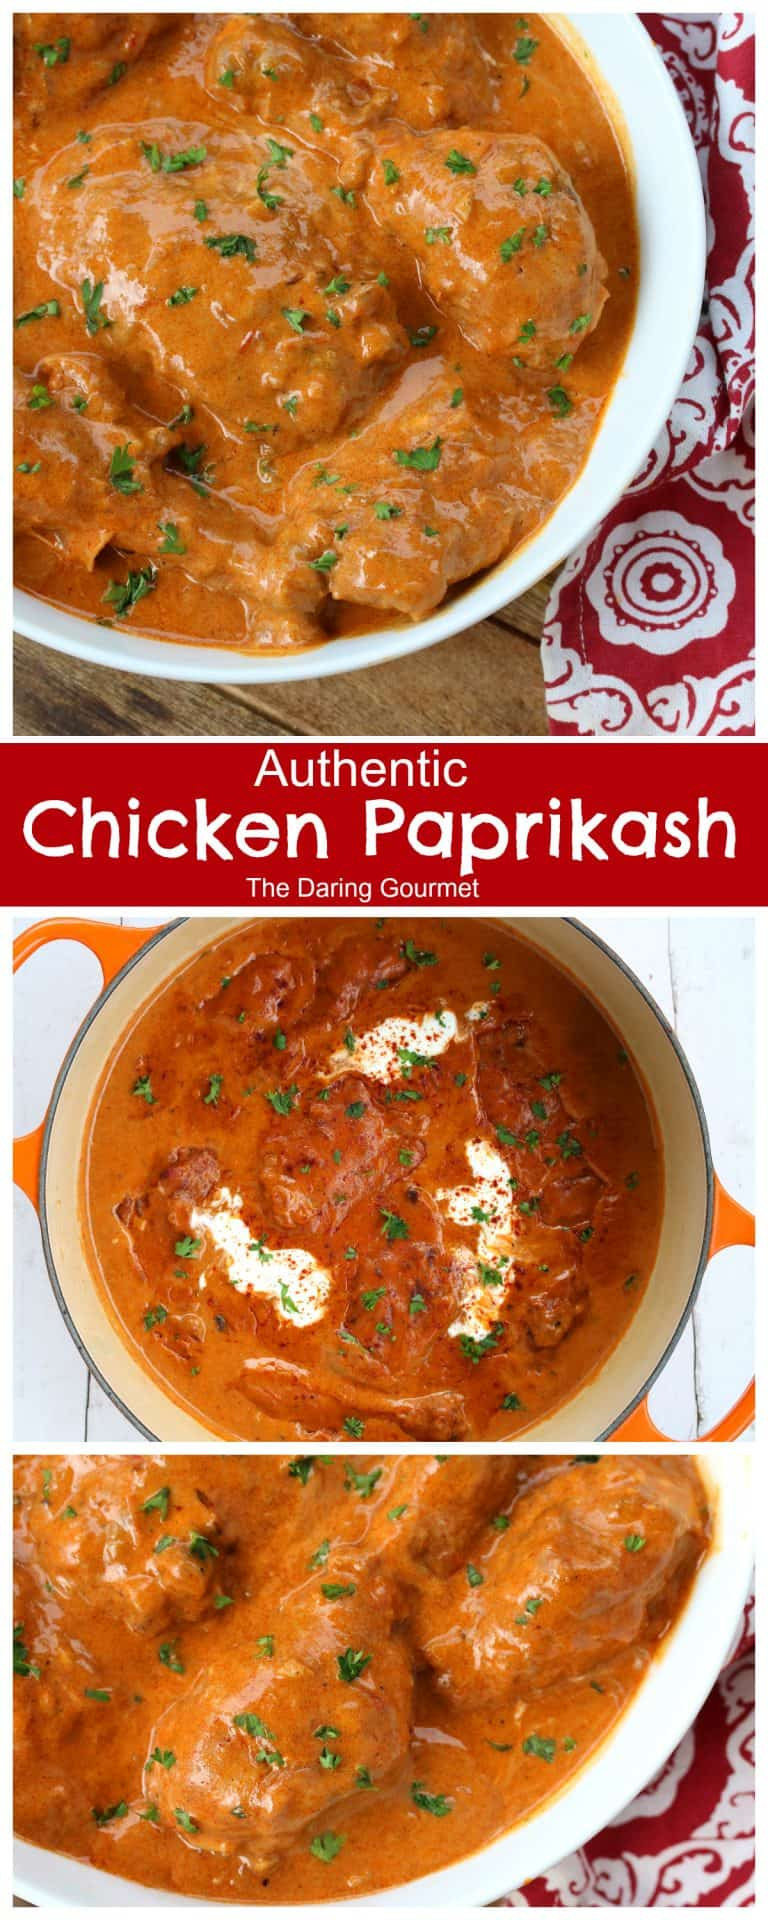 chicken paprikash recipe hungarian authentic traditional